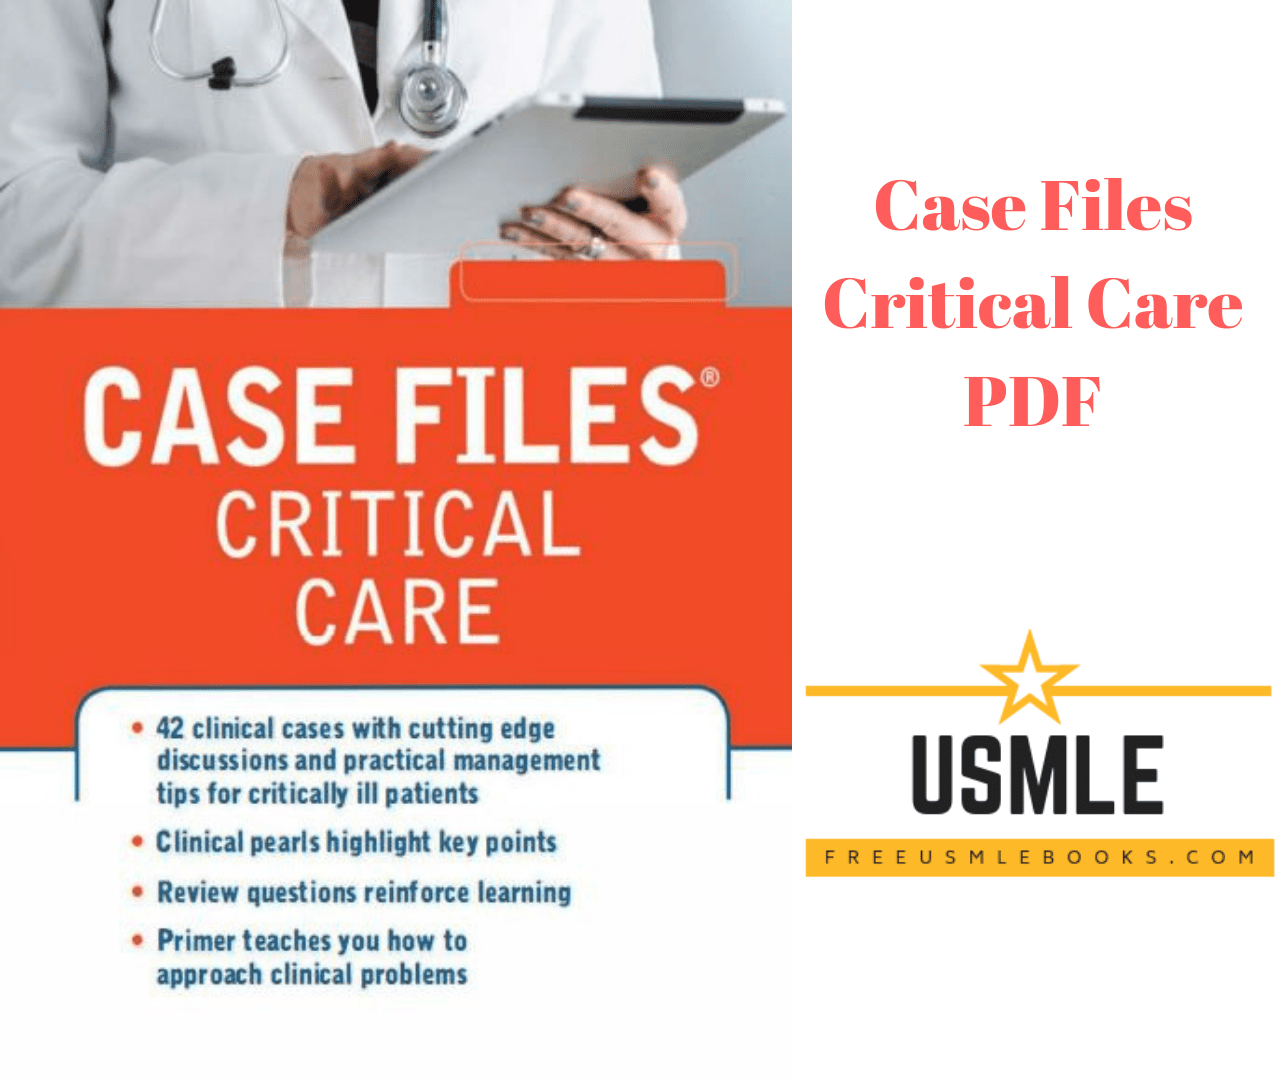 Download Case Files Critical Care PDF Free [Direct Link]